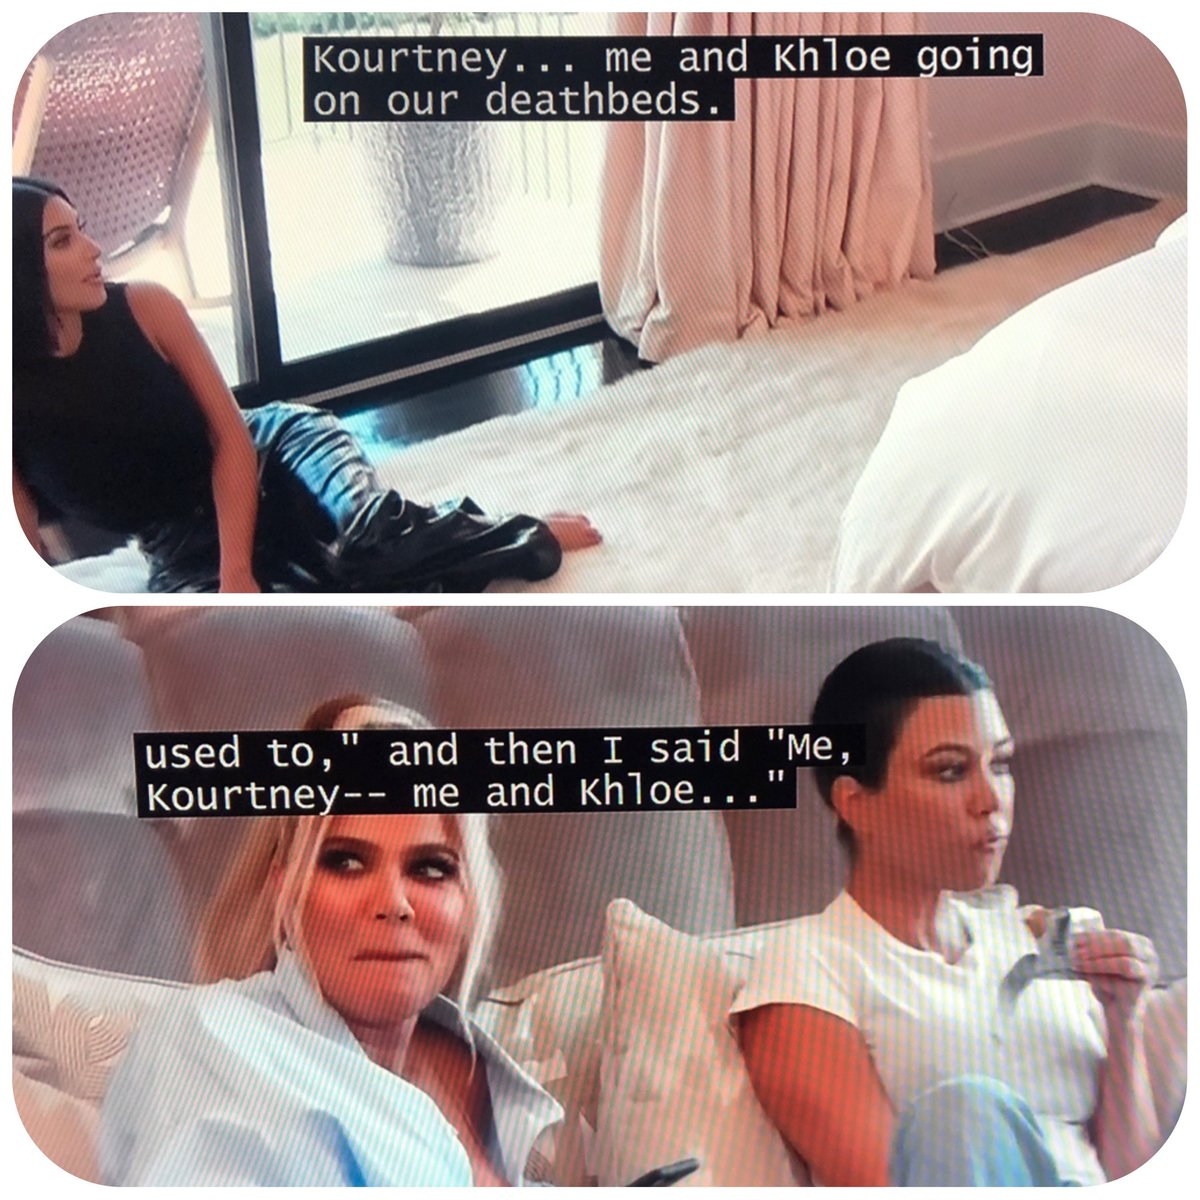 """Kim says things on purpose just to get under Kourtney's skin. In the fight scene Kim says """"Kourtney... Me and Khloe"""" when talking about who is willing to work on their death beds.  10 seconds later she literally makes the same """"mistake"""" just to bother Kourtney.. #KUWTK"""